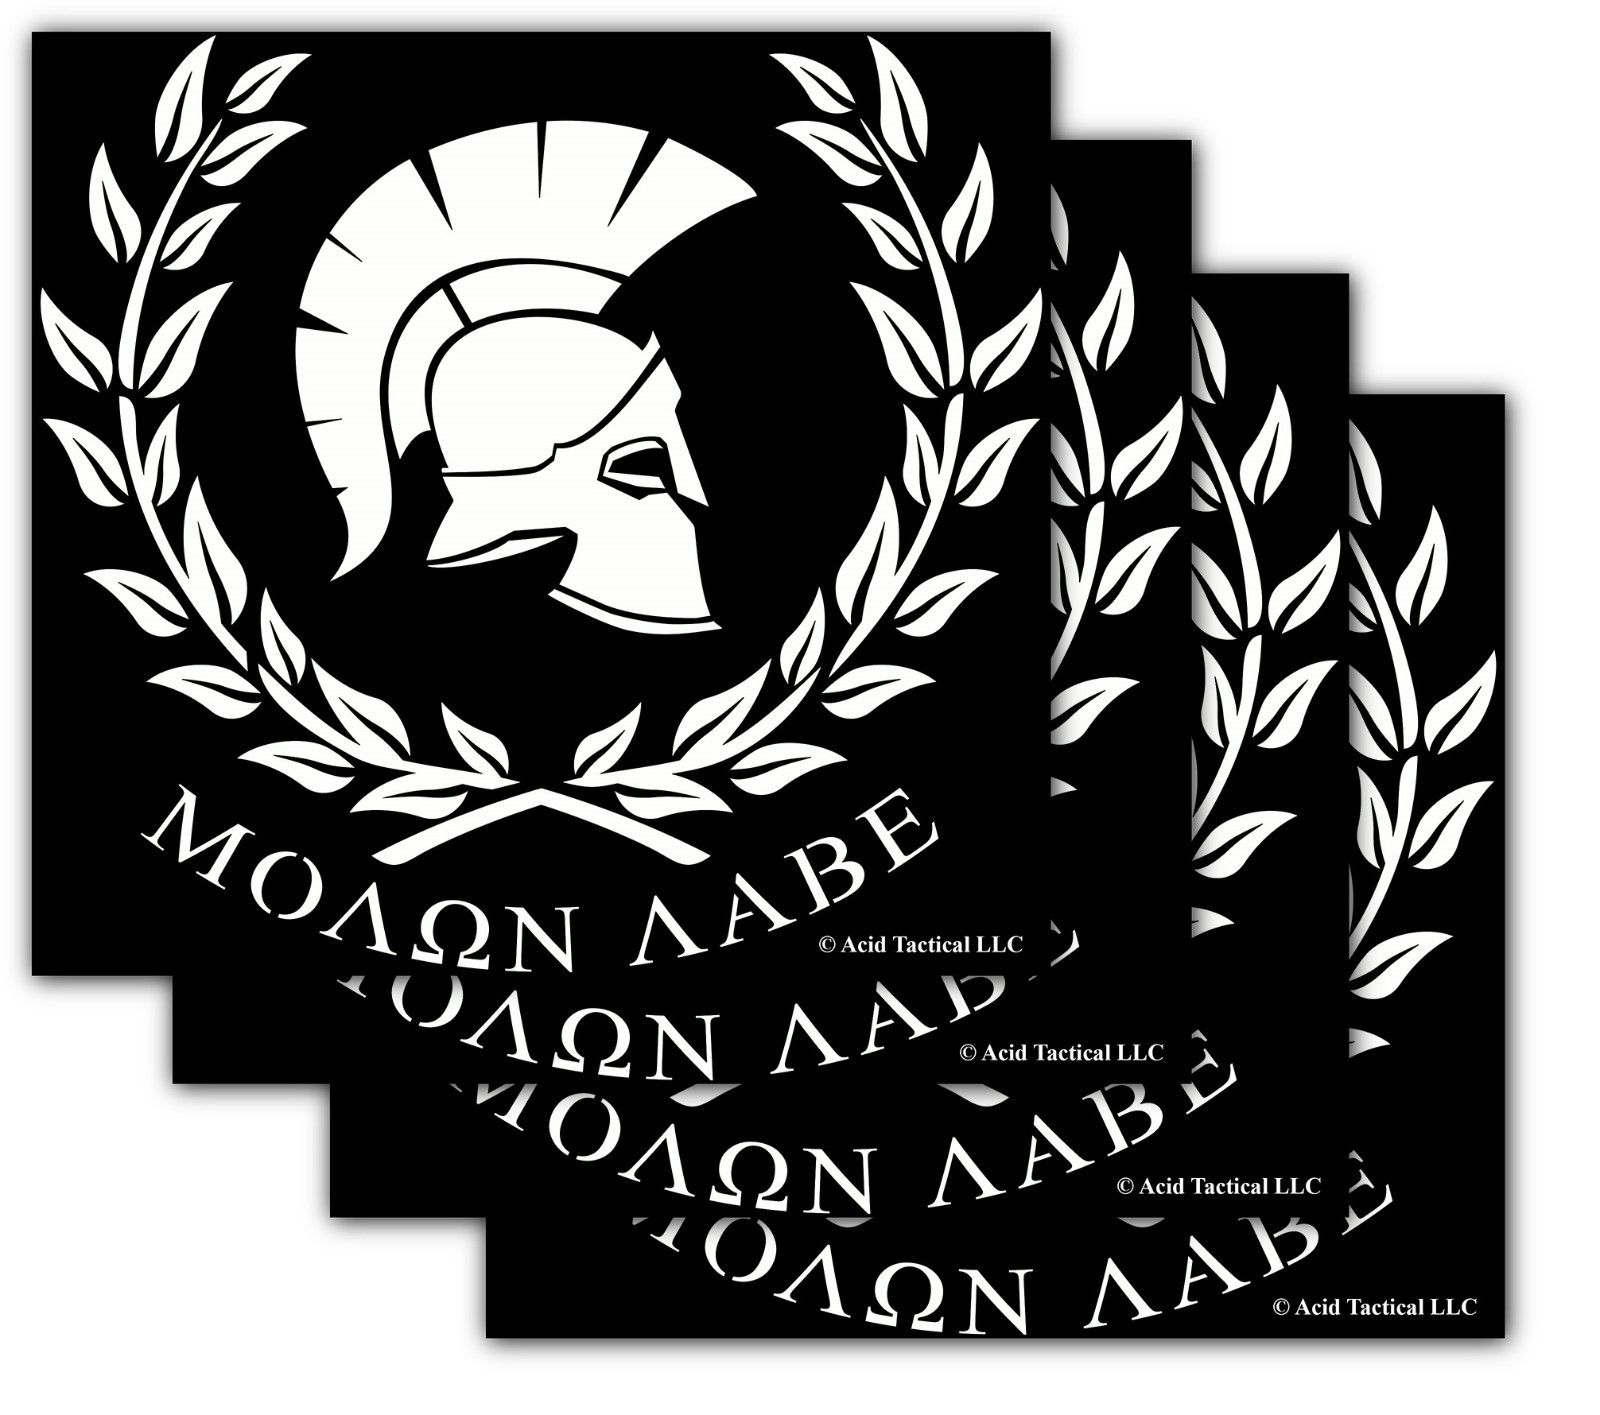 8 Molon Labe Vinyl Car Truck Window Decal Sticker 4pk White